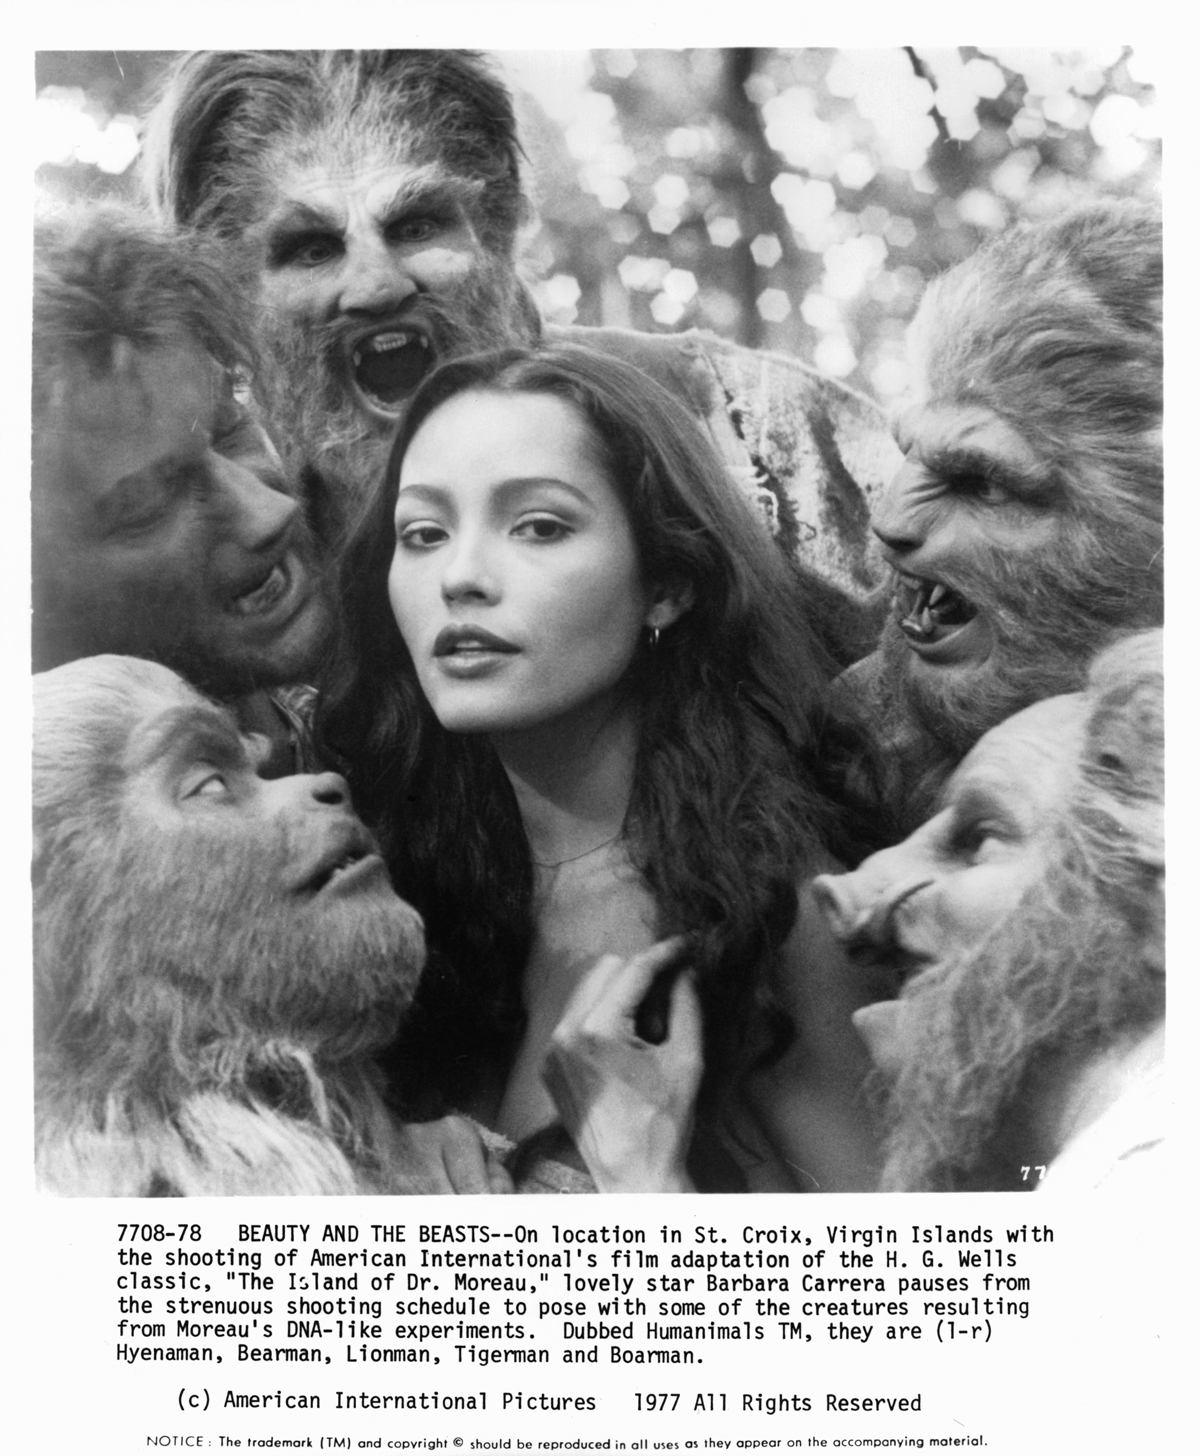 On location for 'The Island of Dr. Moreau,' 1977